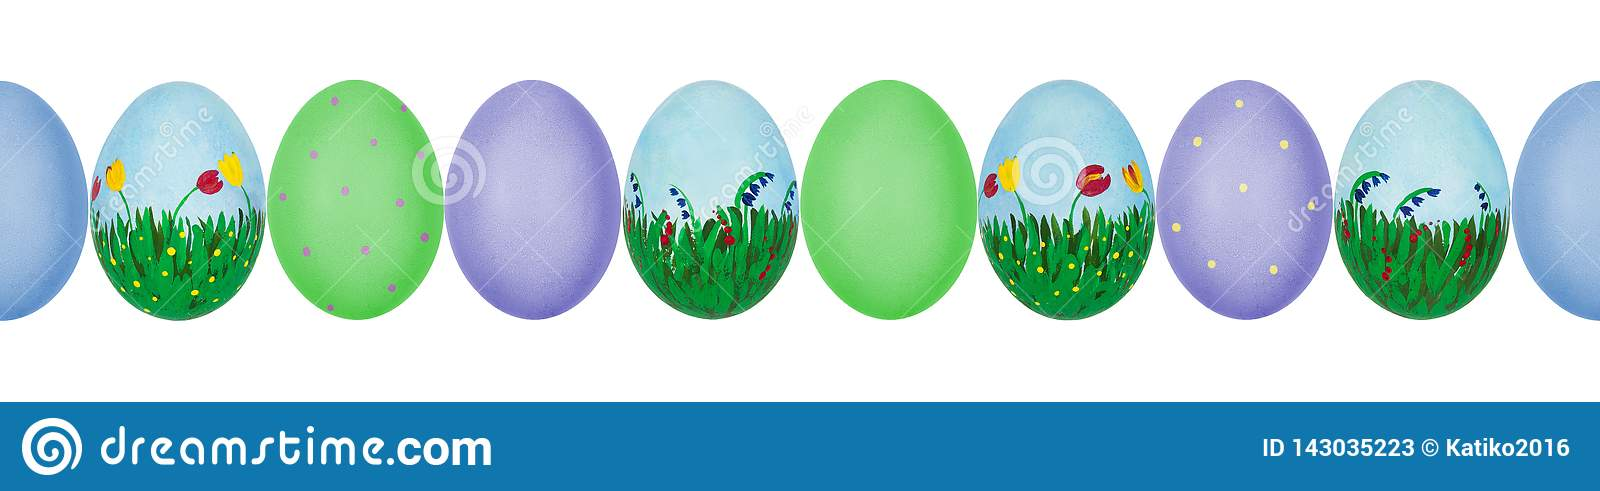 Close up photo of colorful hand painted Easter eggs with eggshell texture in a row. Seamless pattern.